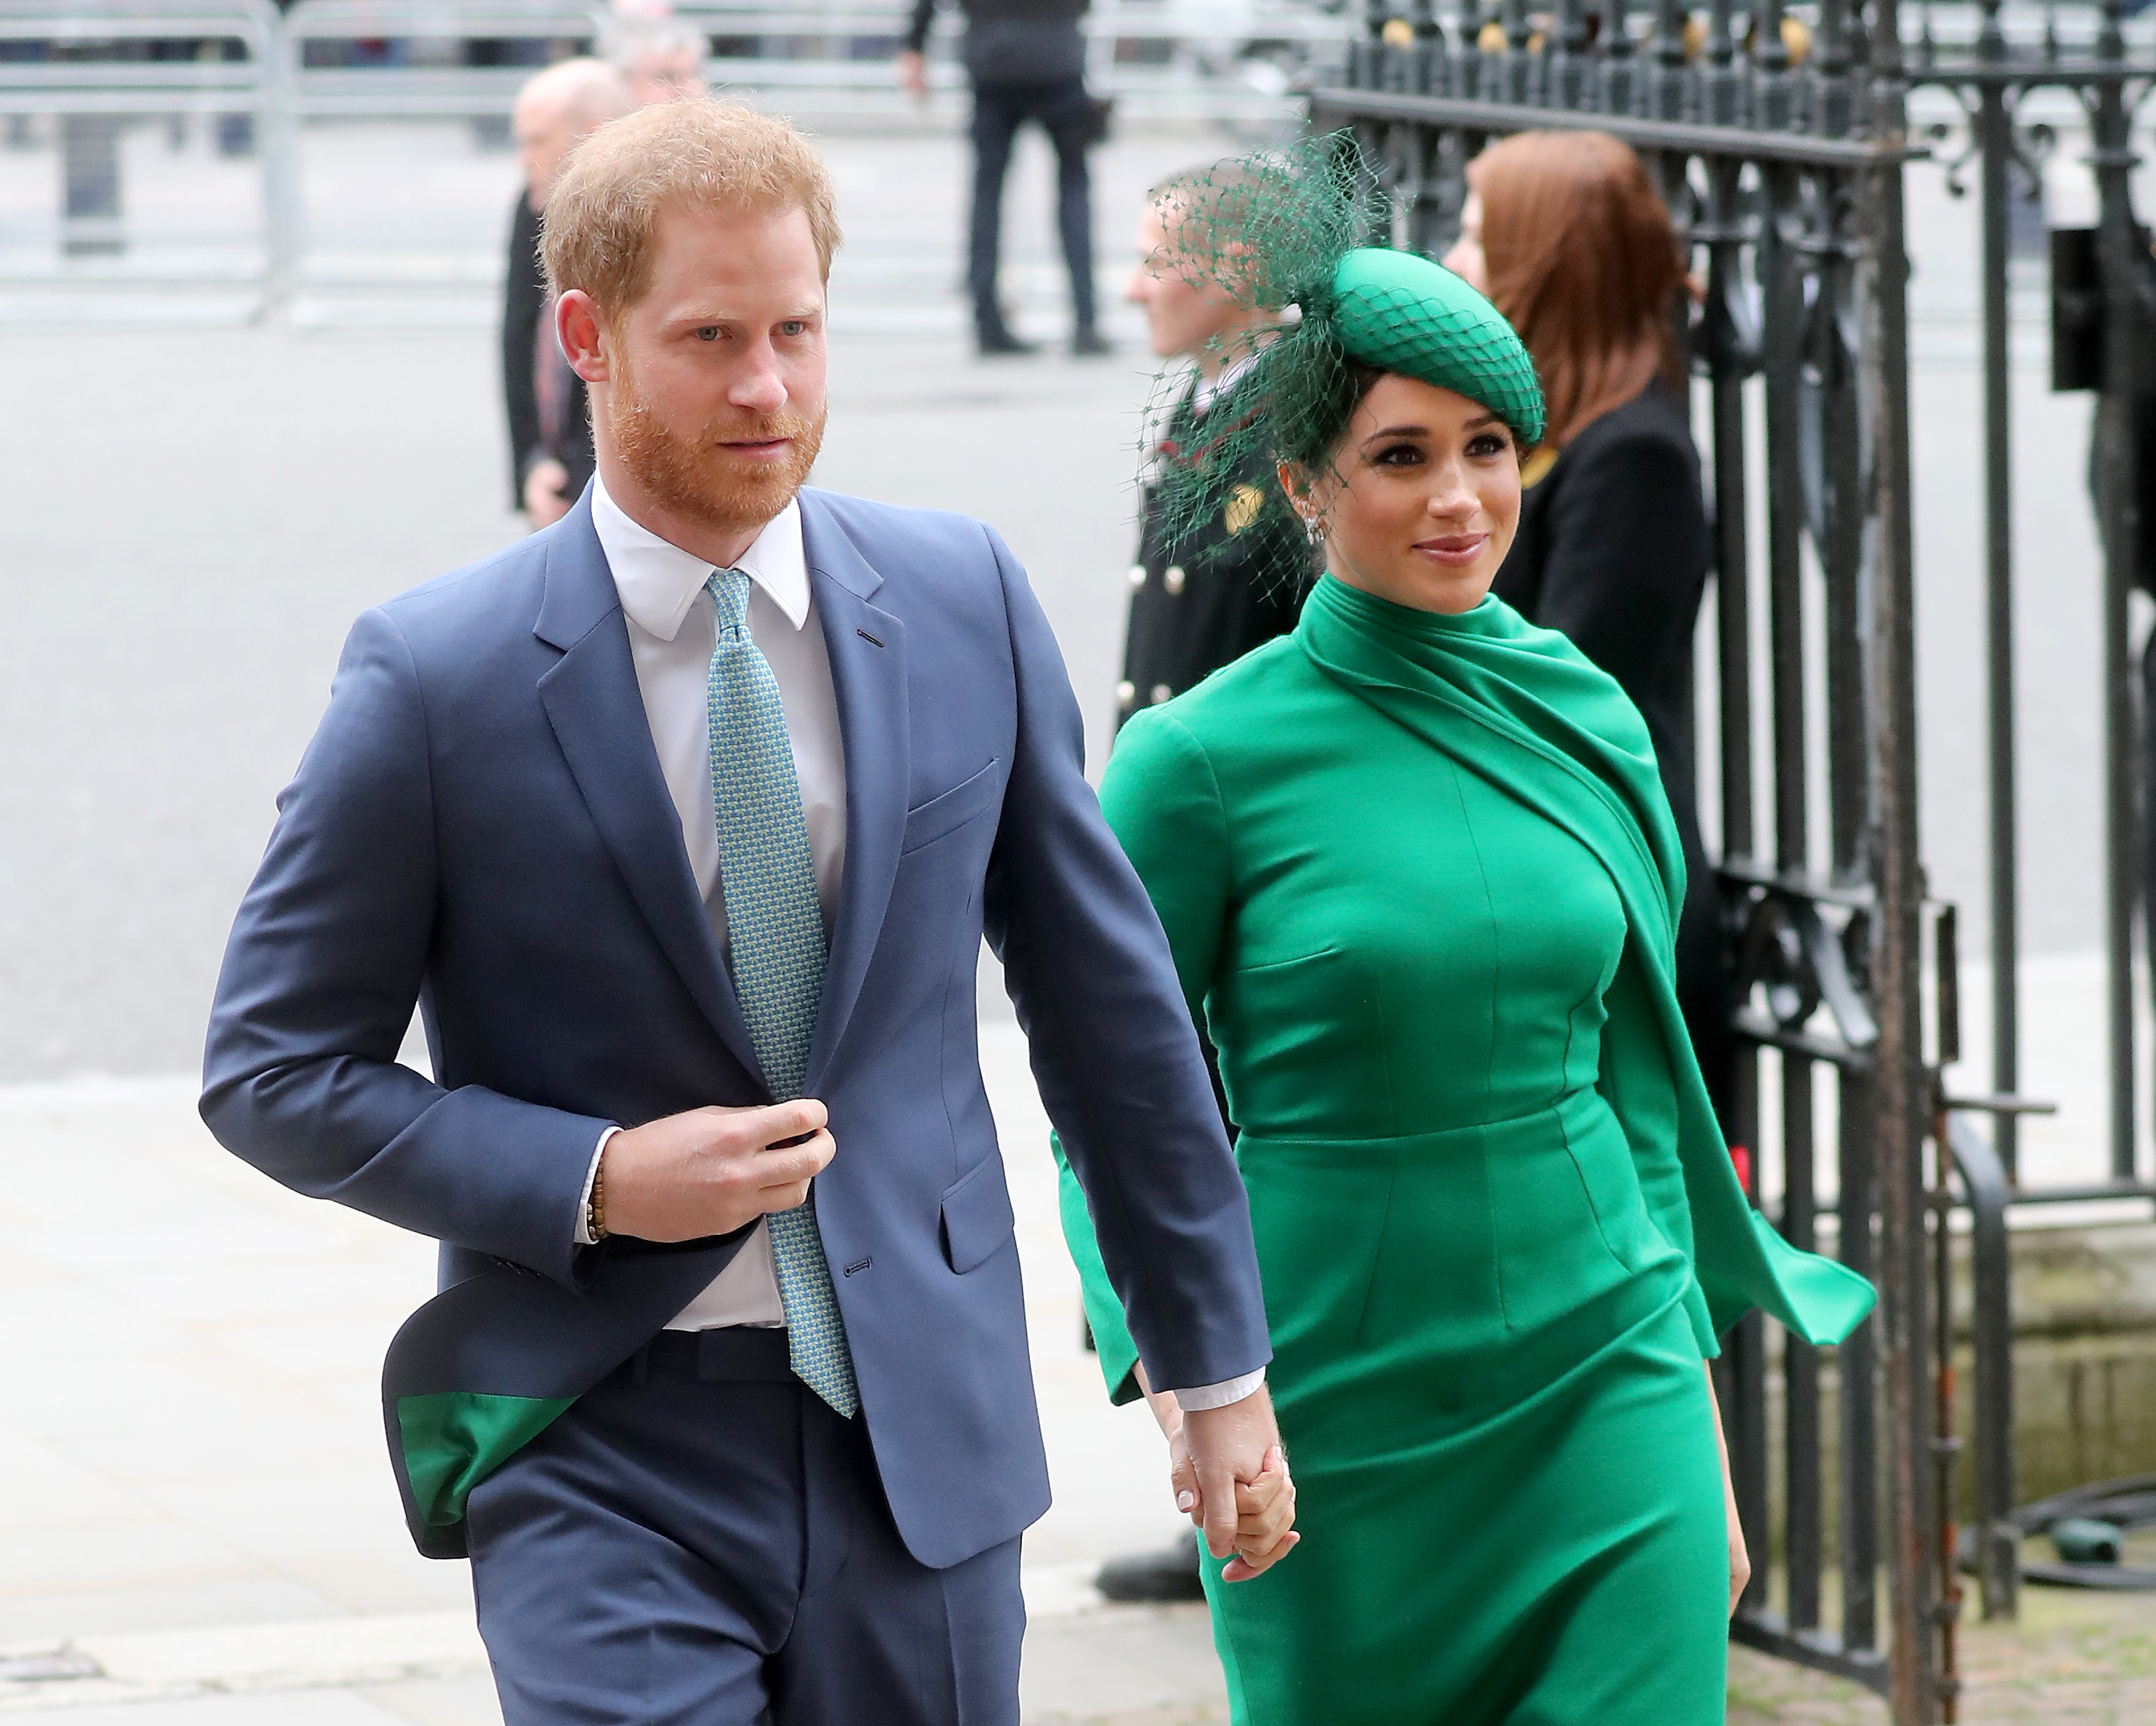 Prince Harry and Meghan Markle walking into church for the Commonwealth Day 2020 service in London